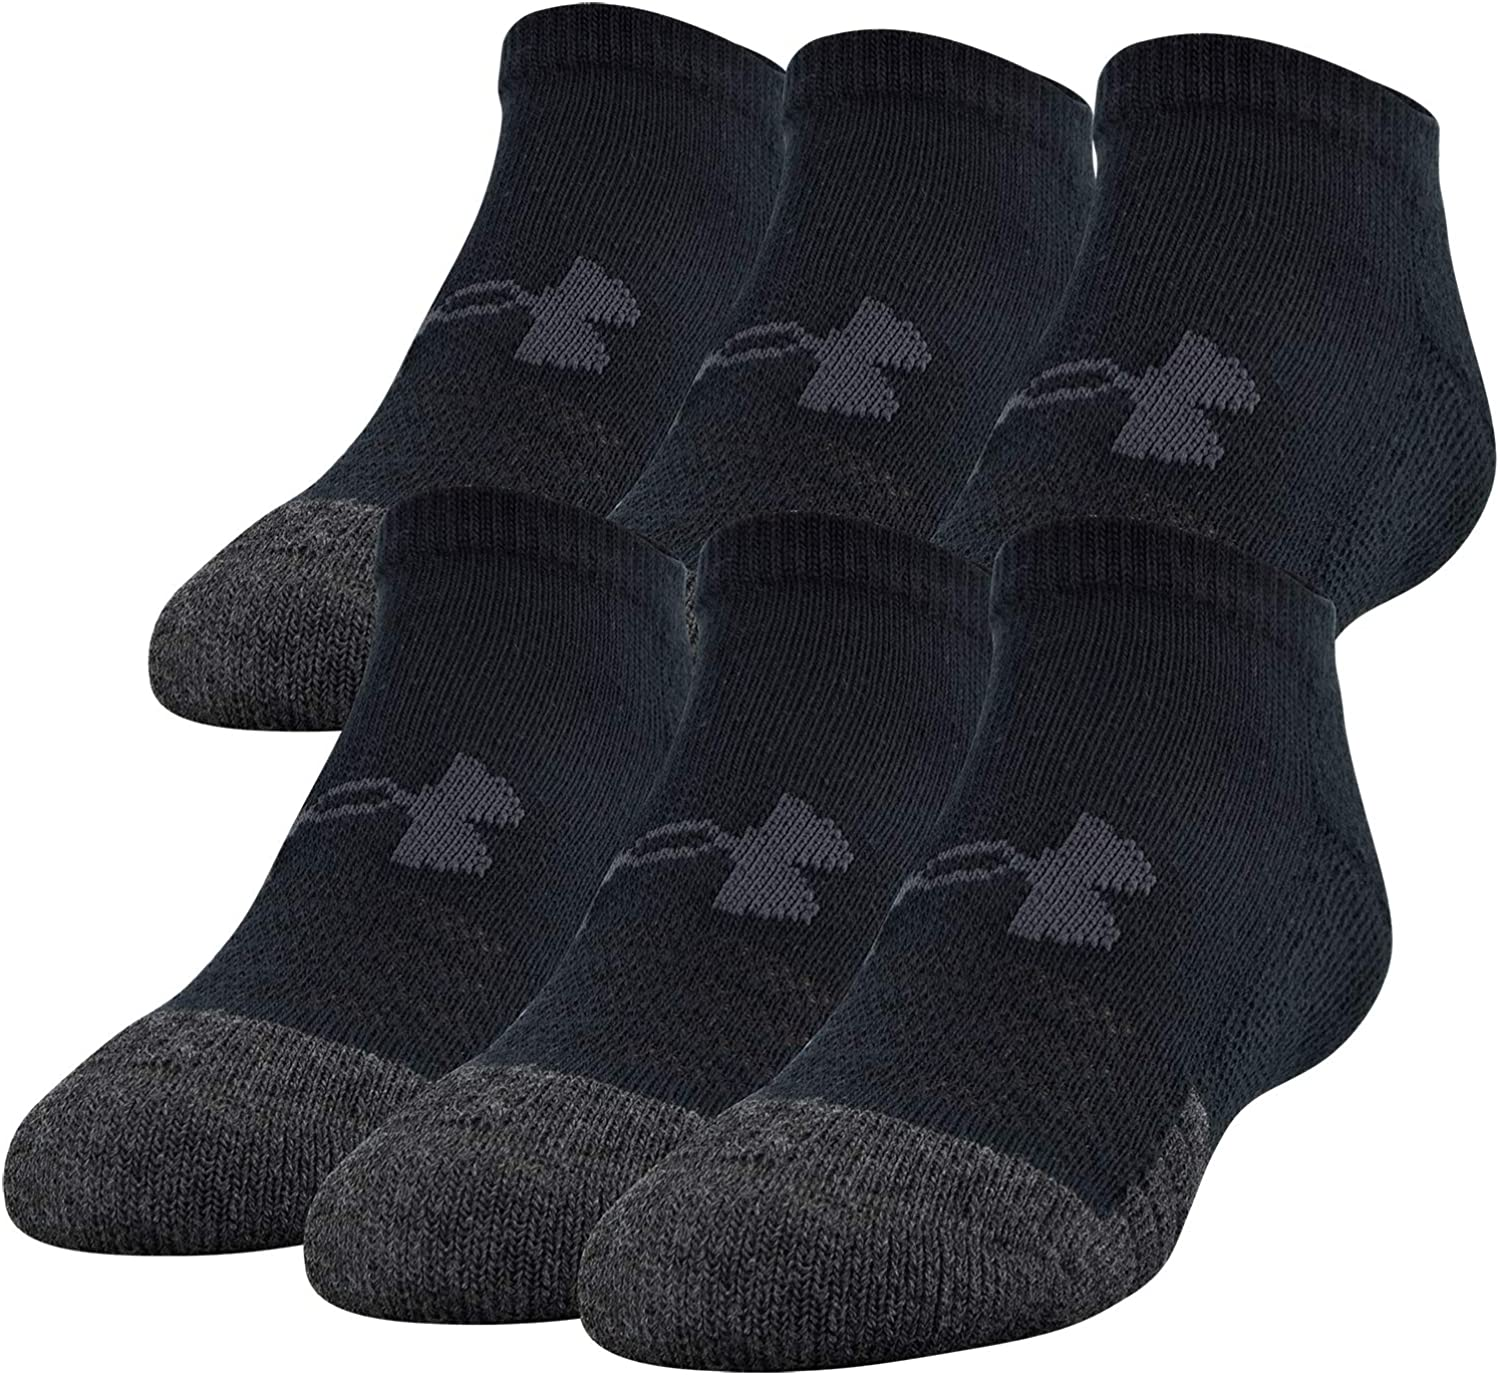 Under Armour Youth Performance Tech No Show Socks, 6-Pairs , Black , Shoe Size: Youth 13.5K-4Y: Clothing